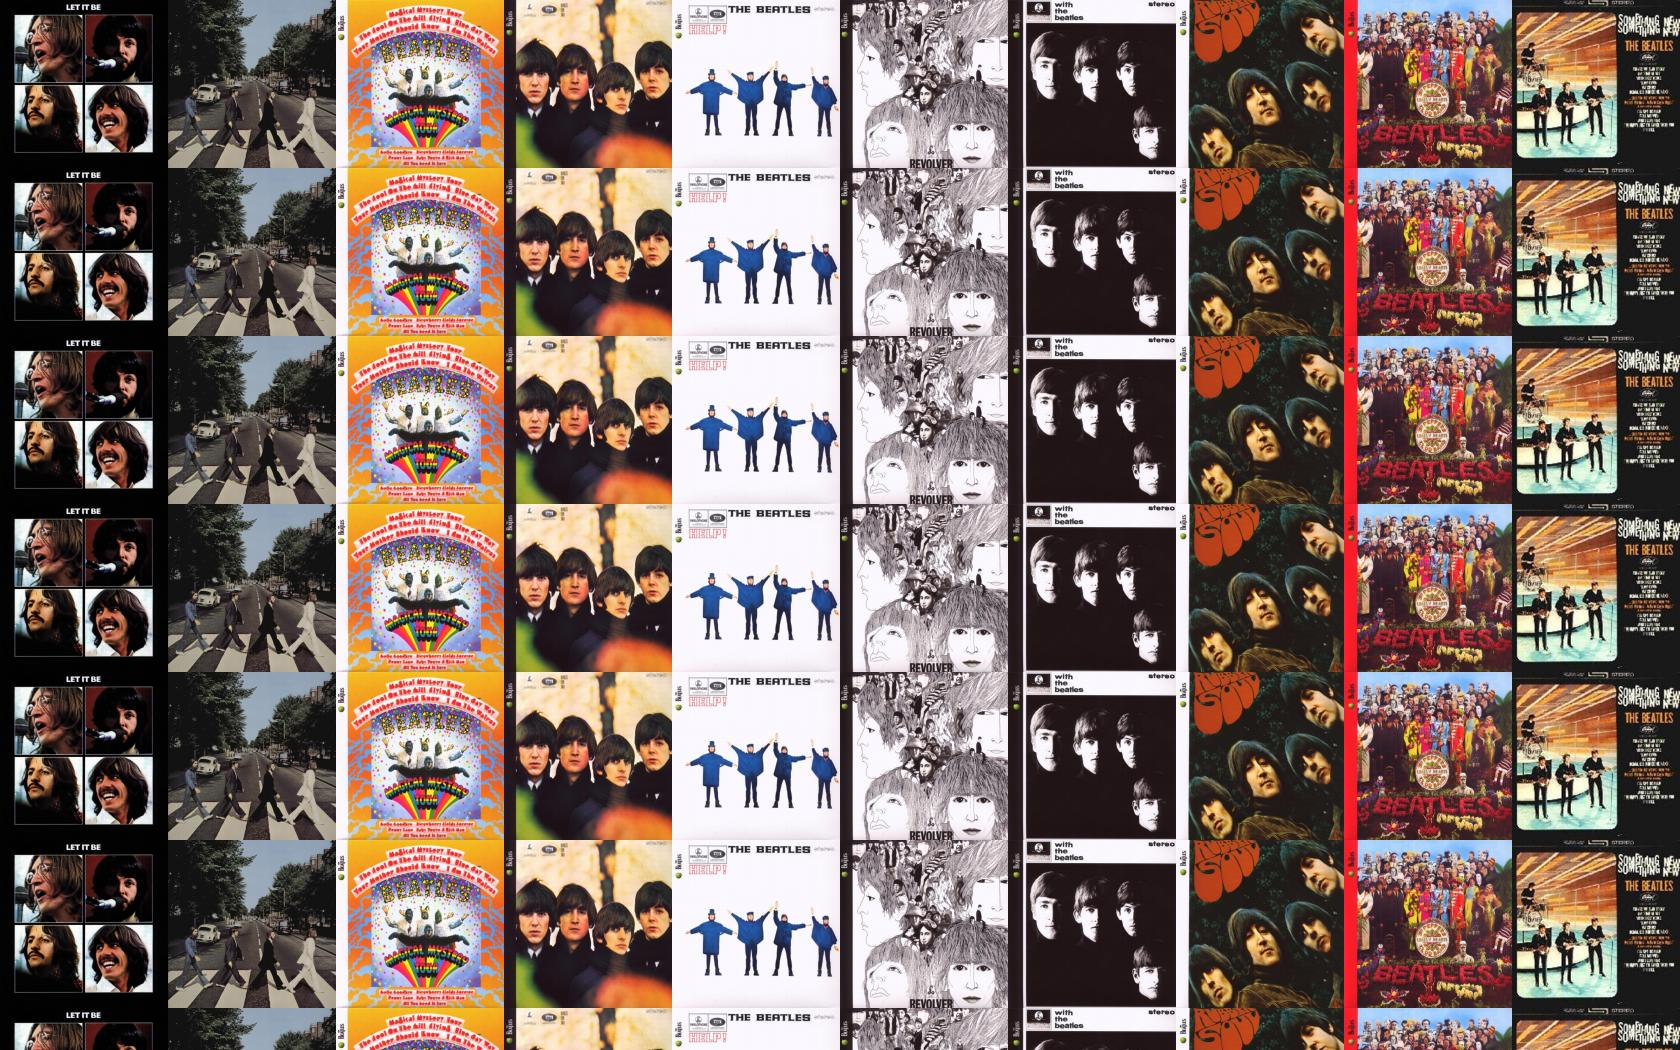 Beatles Let Abbey Road Magical Mystery Tour Wallpaper Tiled Desktop